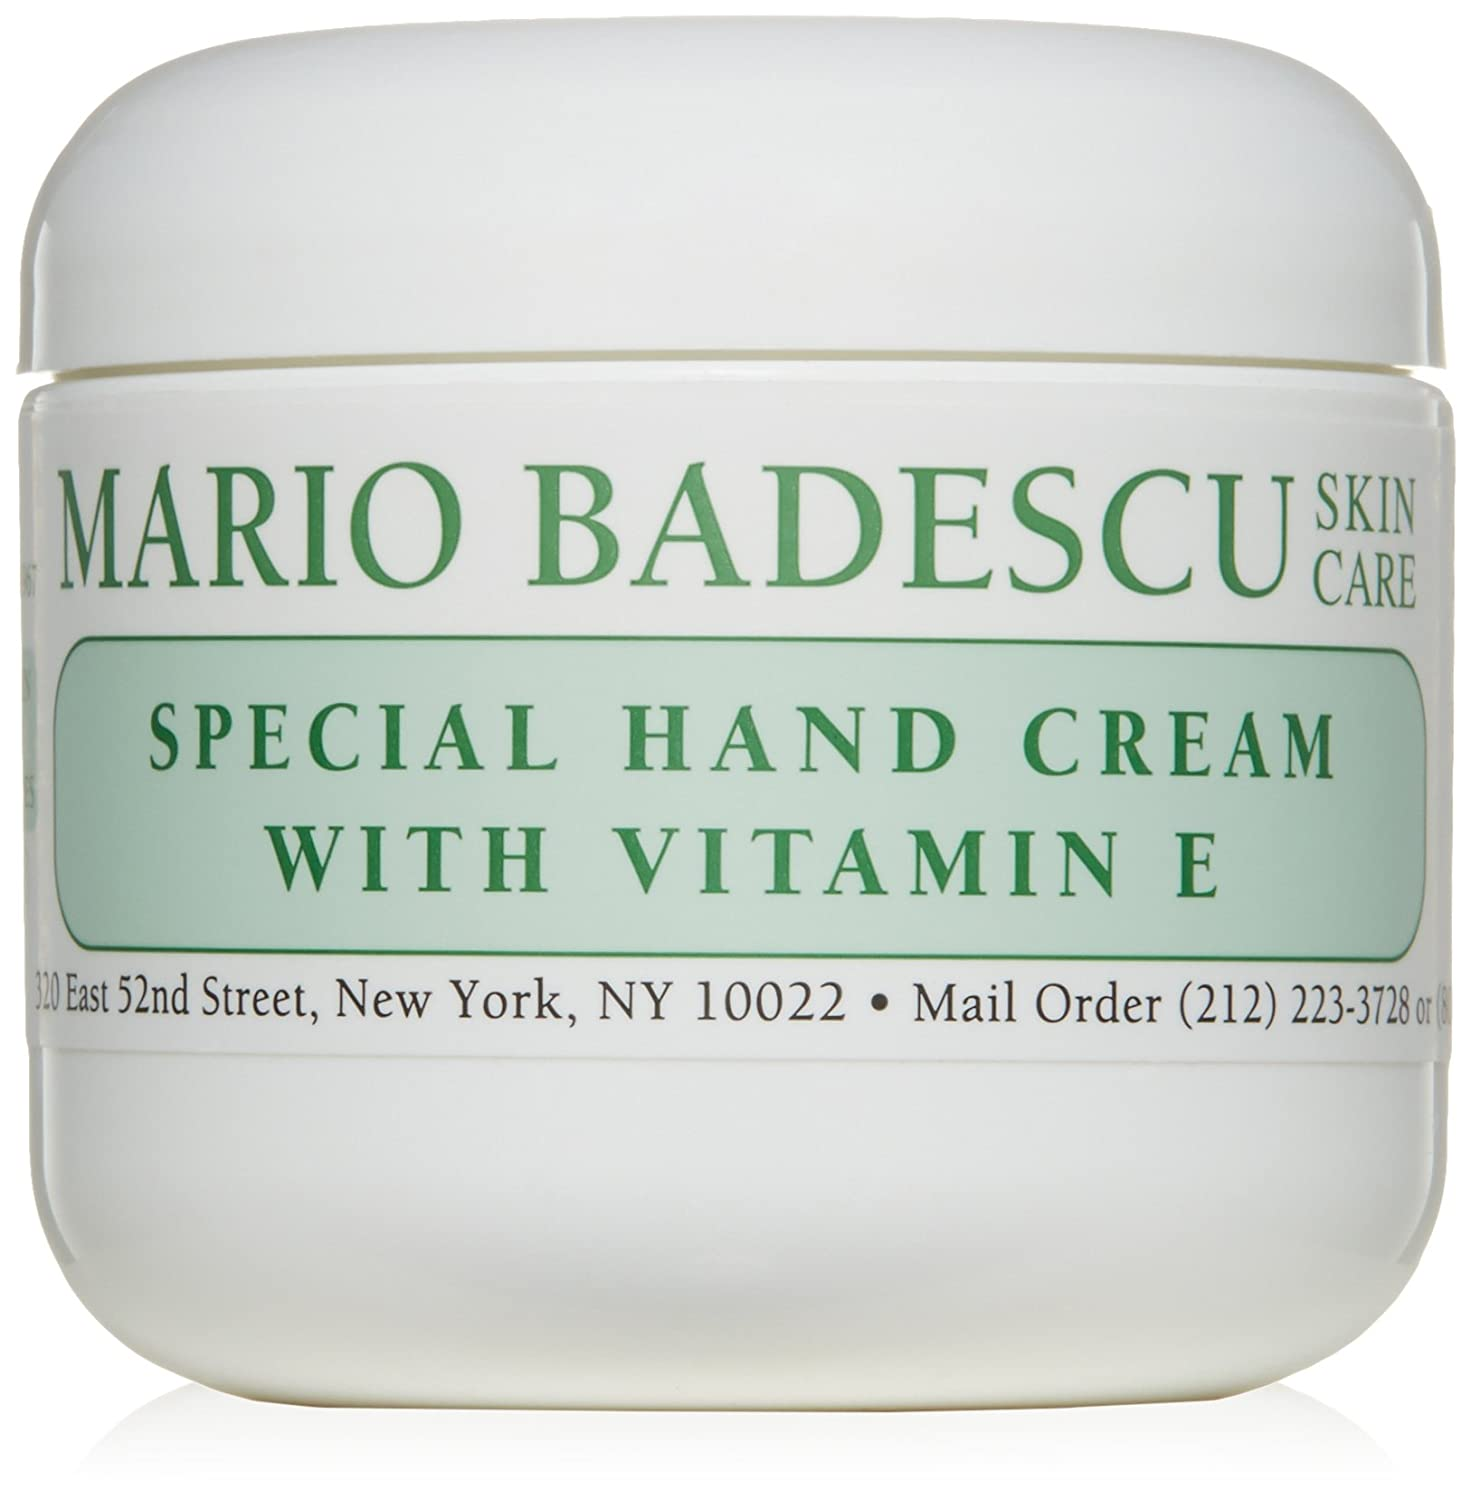 Amazon.com: Mario Badescu Special Hand Cream with Vitamin E, 8 oz.: Luxury Beauty